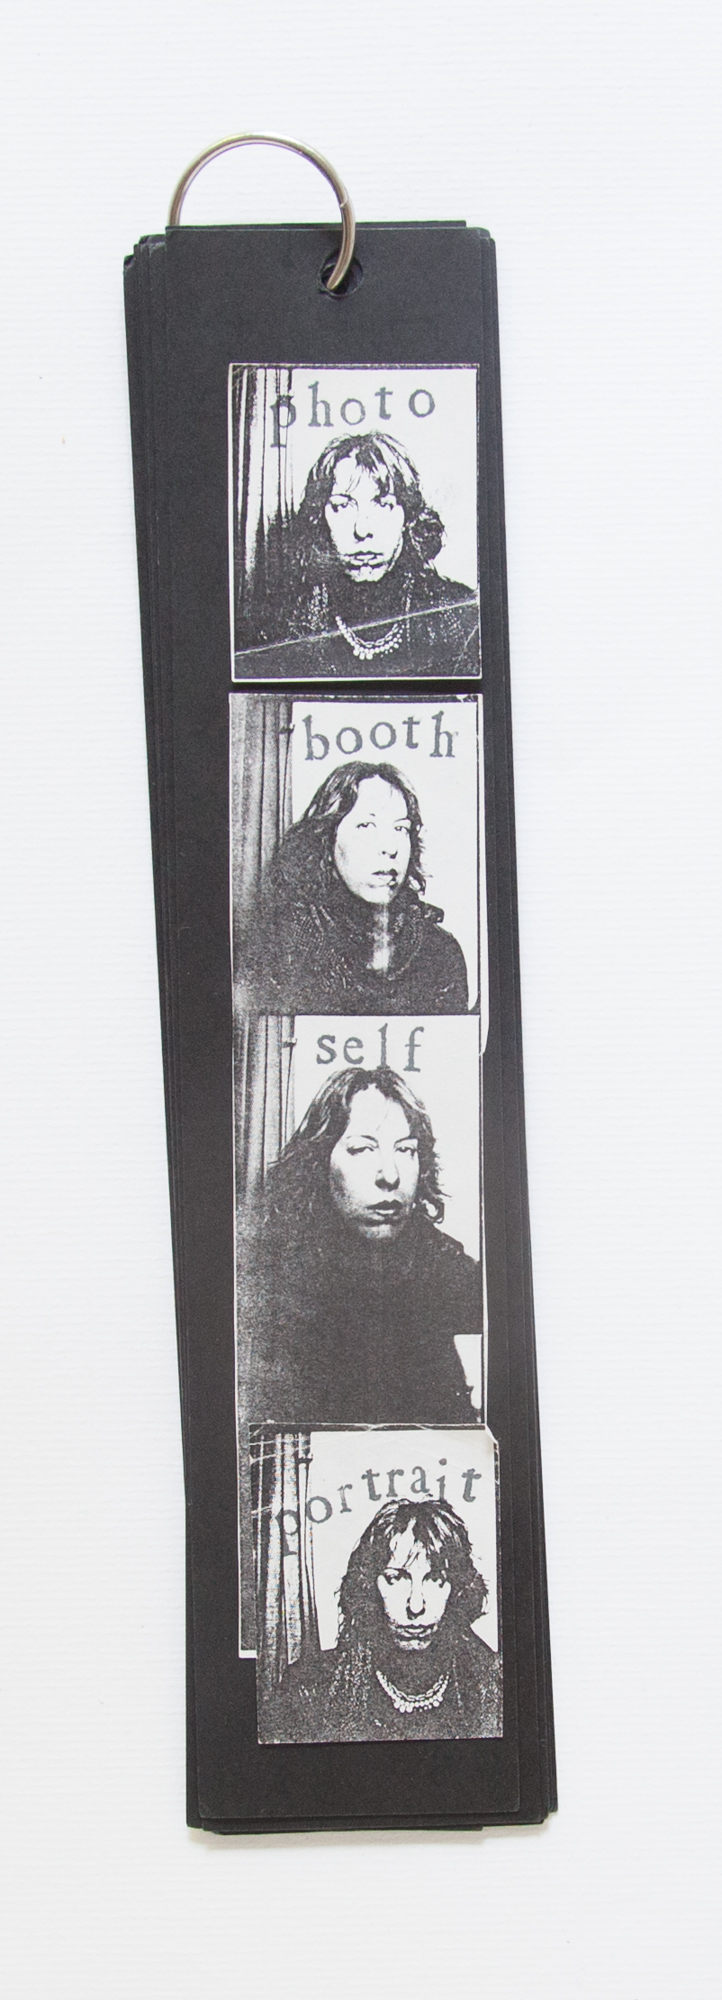 188_Photo Booth Self-Portraits (1988)_.jpg